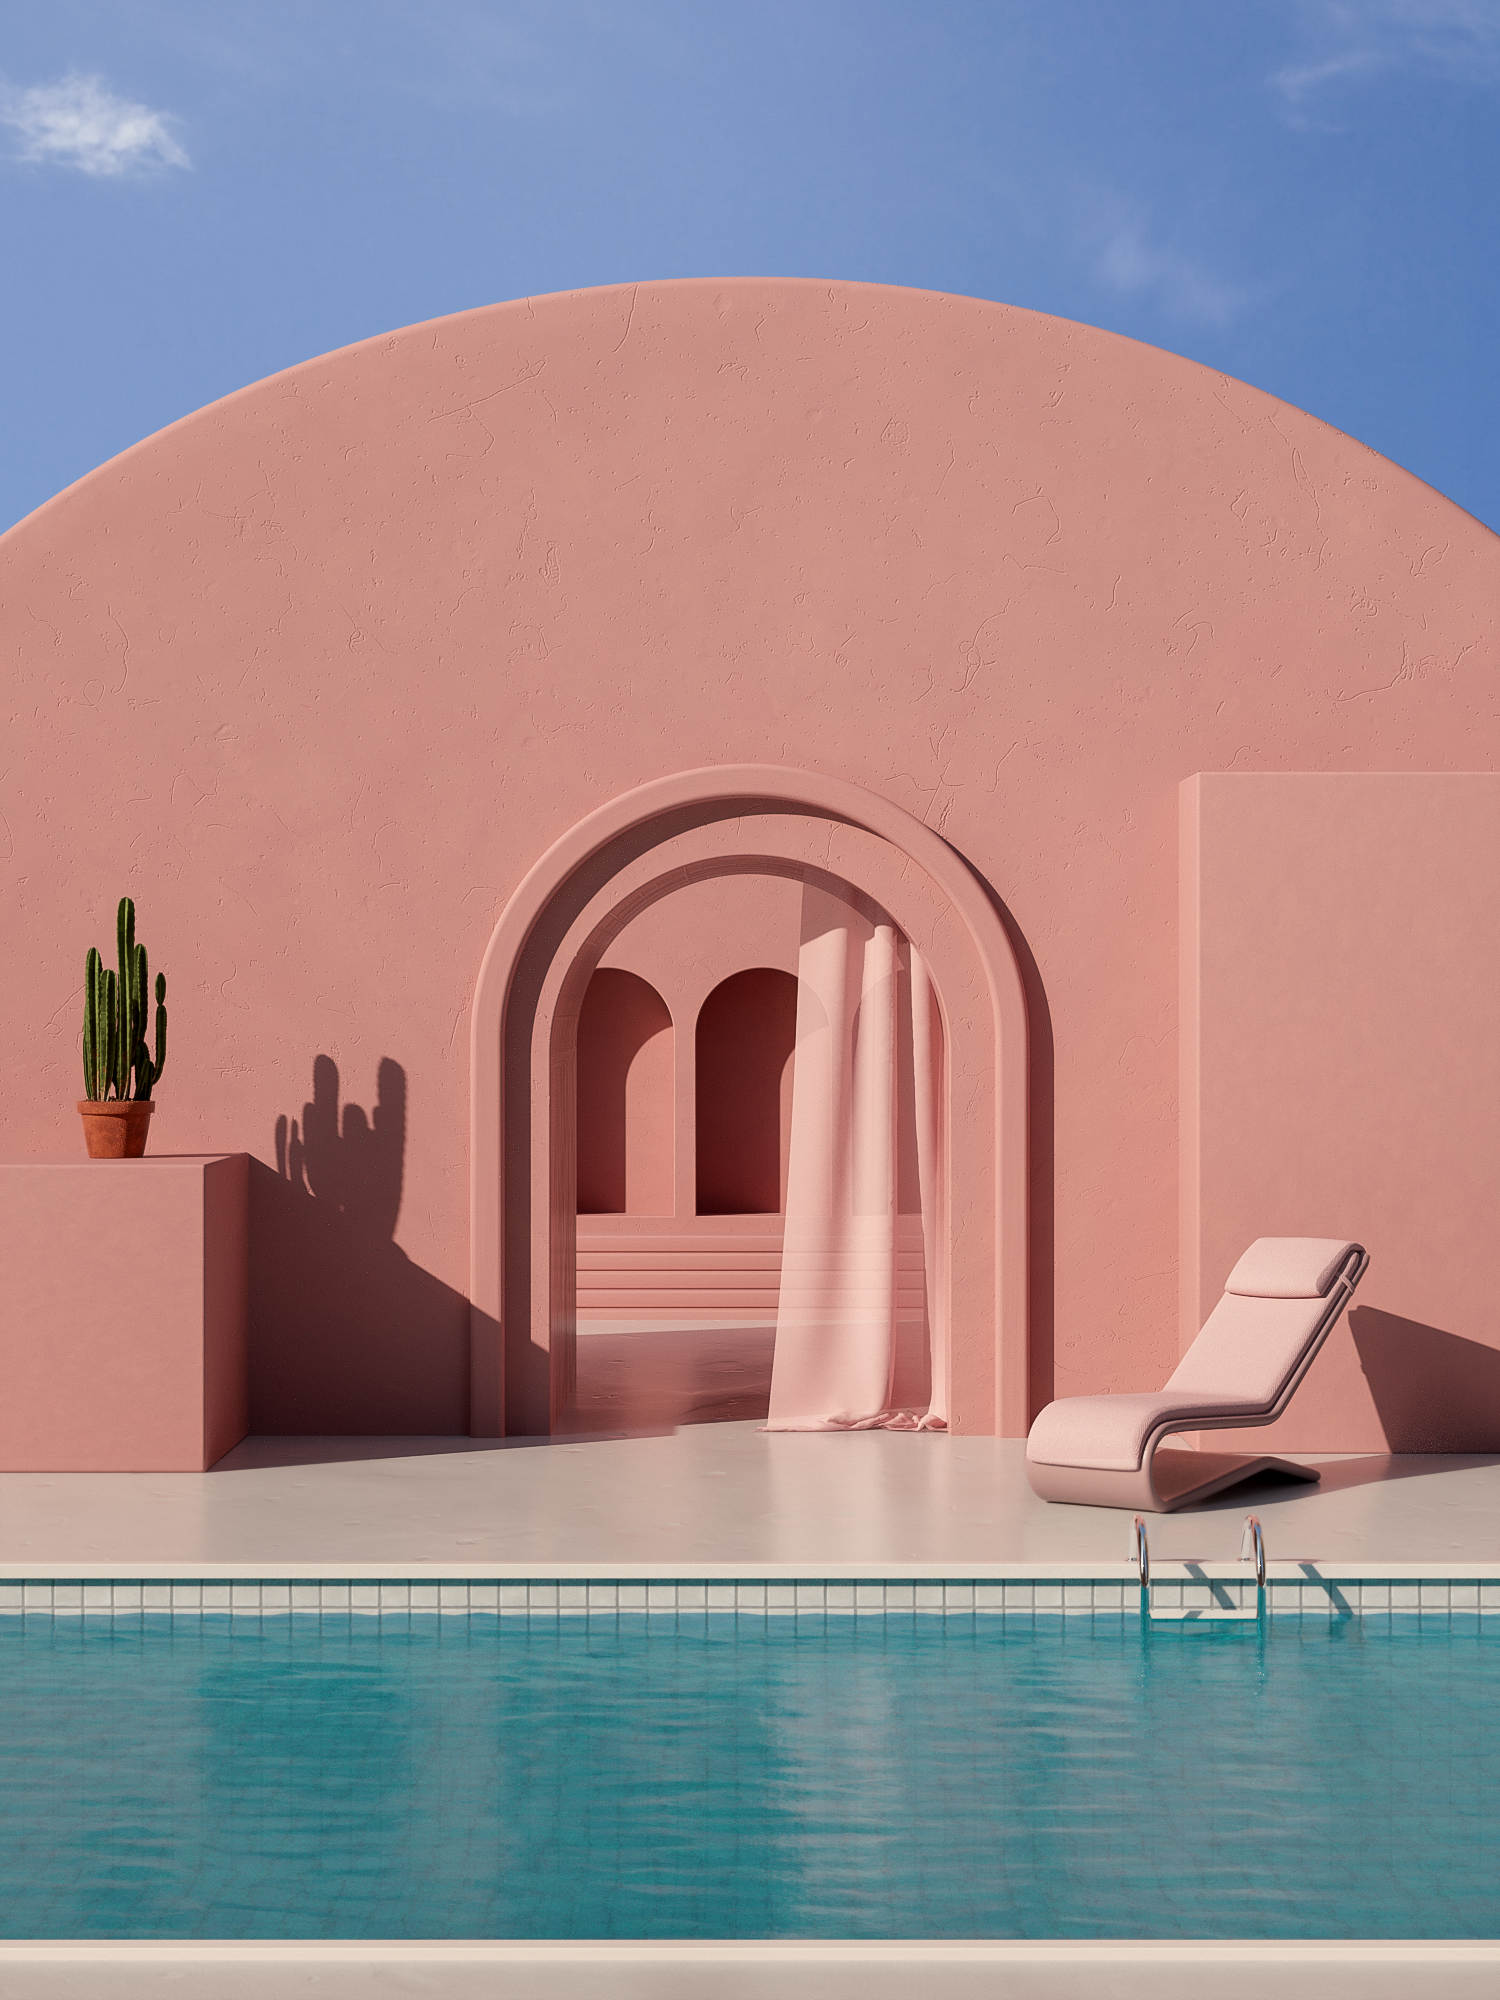 Dreamy & Surreal 'Summer in Spain' Illustrations